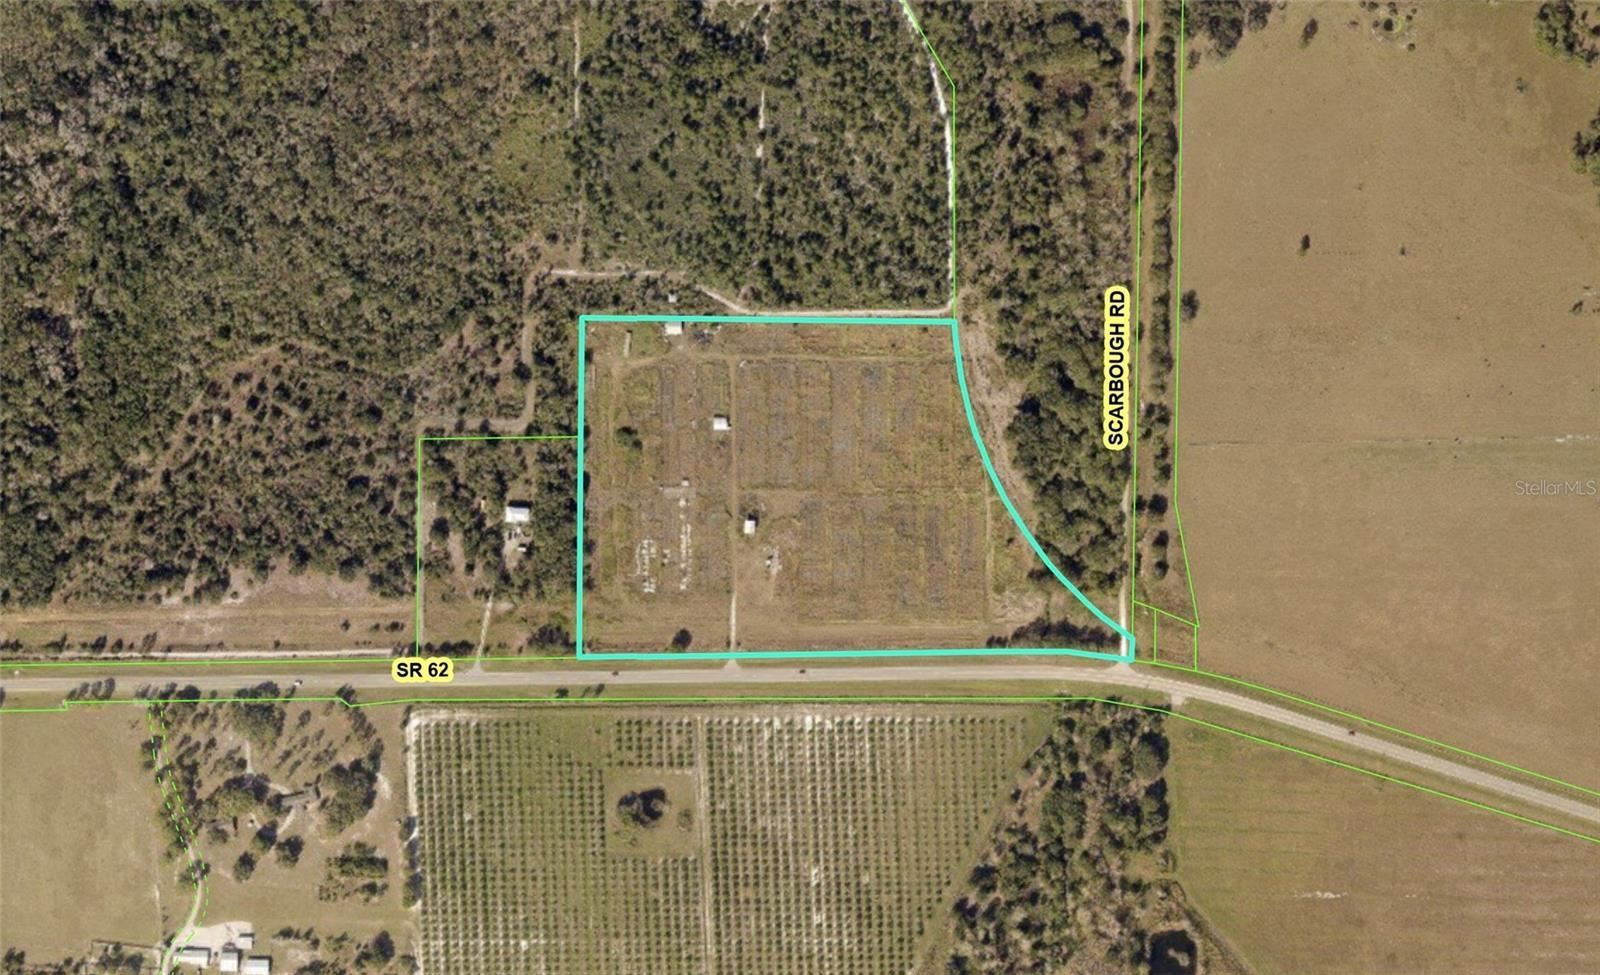 Photo of 30600 STATE ROAD 62, DUETTE, FL 34219 (MLS # O5938531)